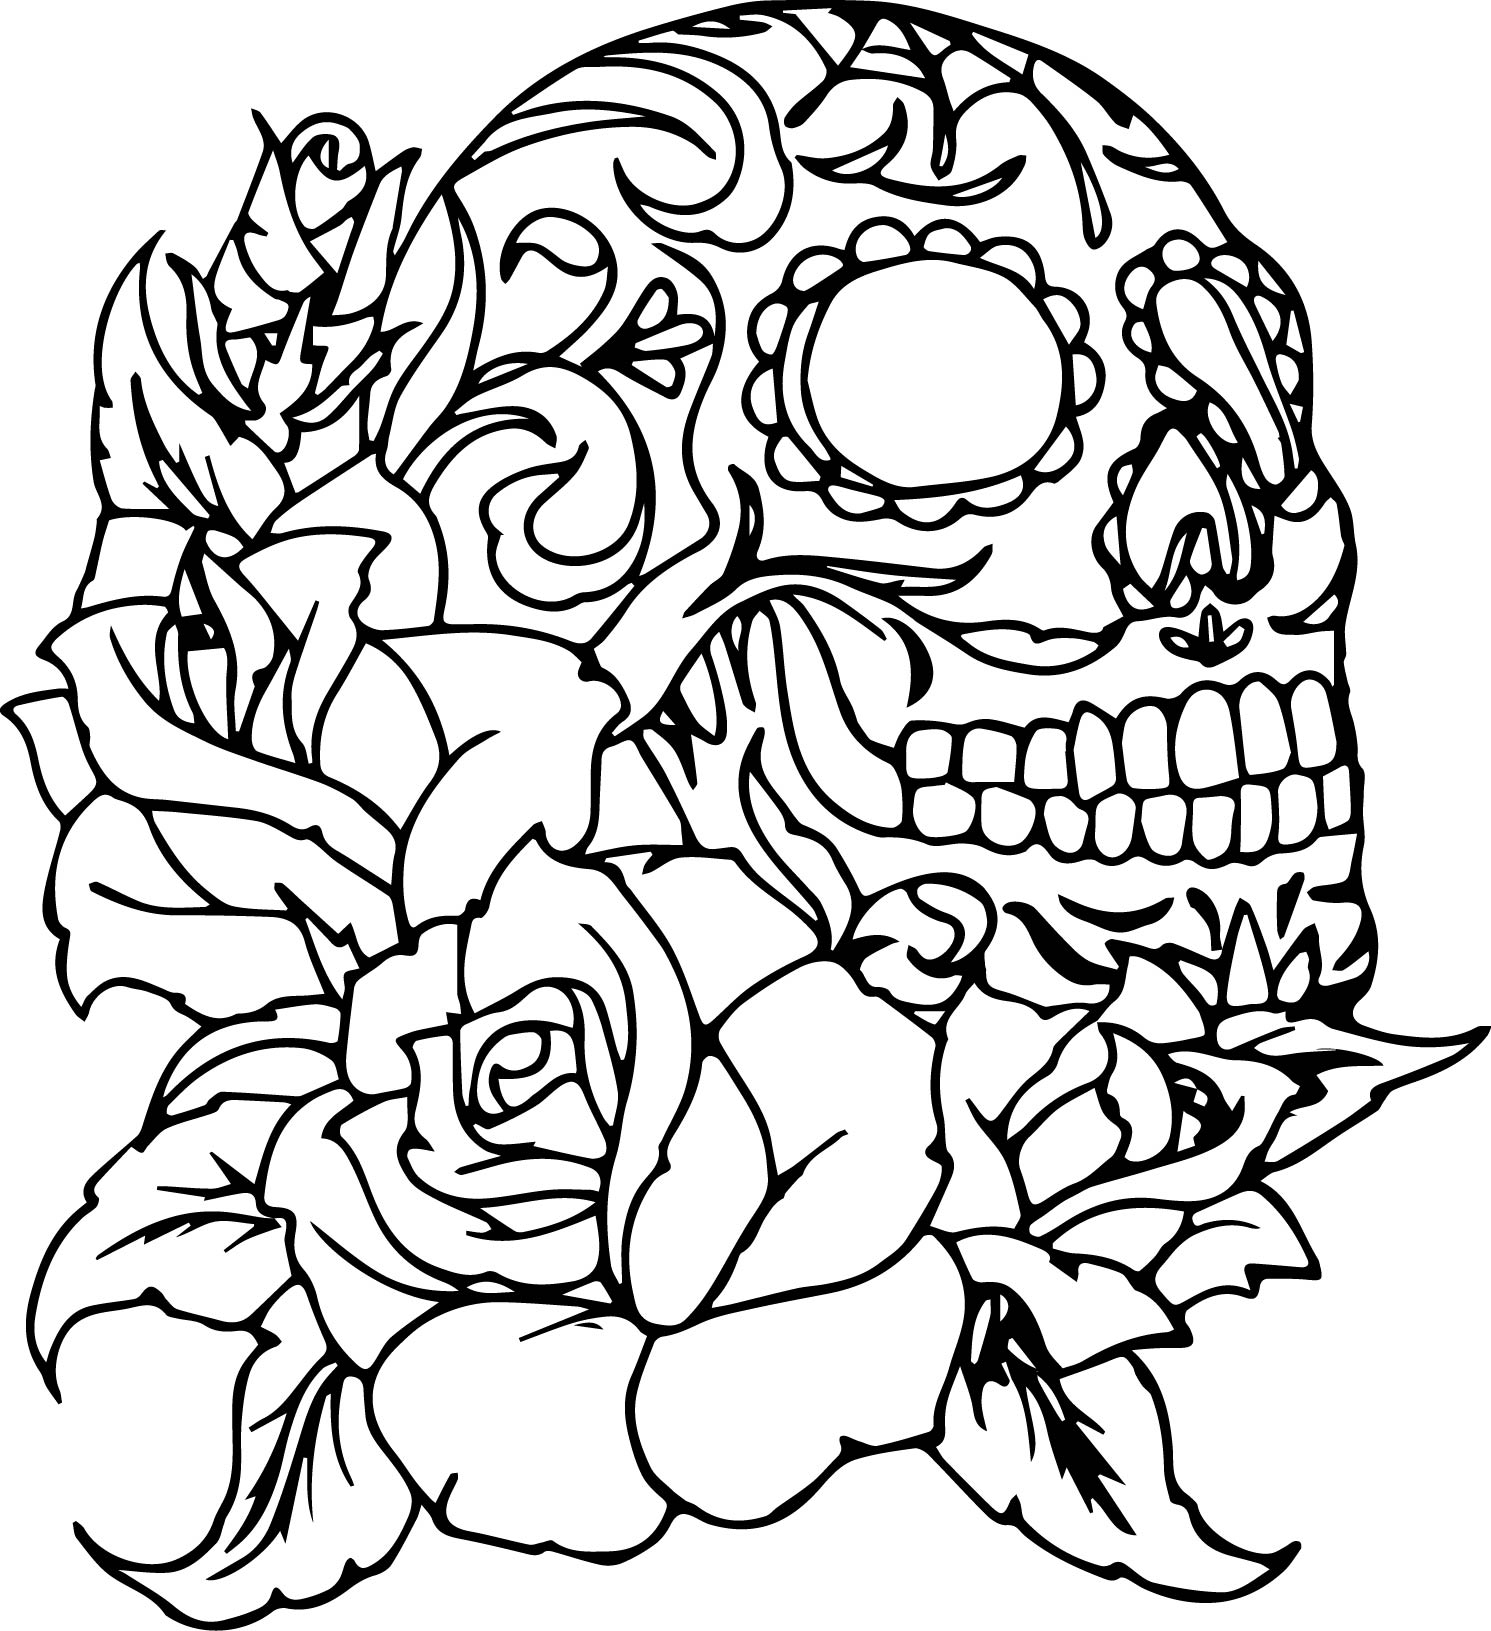 1491x1631 Coloring Pages Of Roses And Skulls Snap Cara